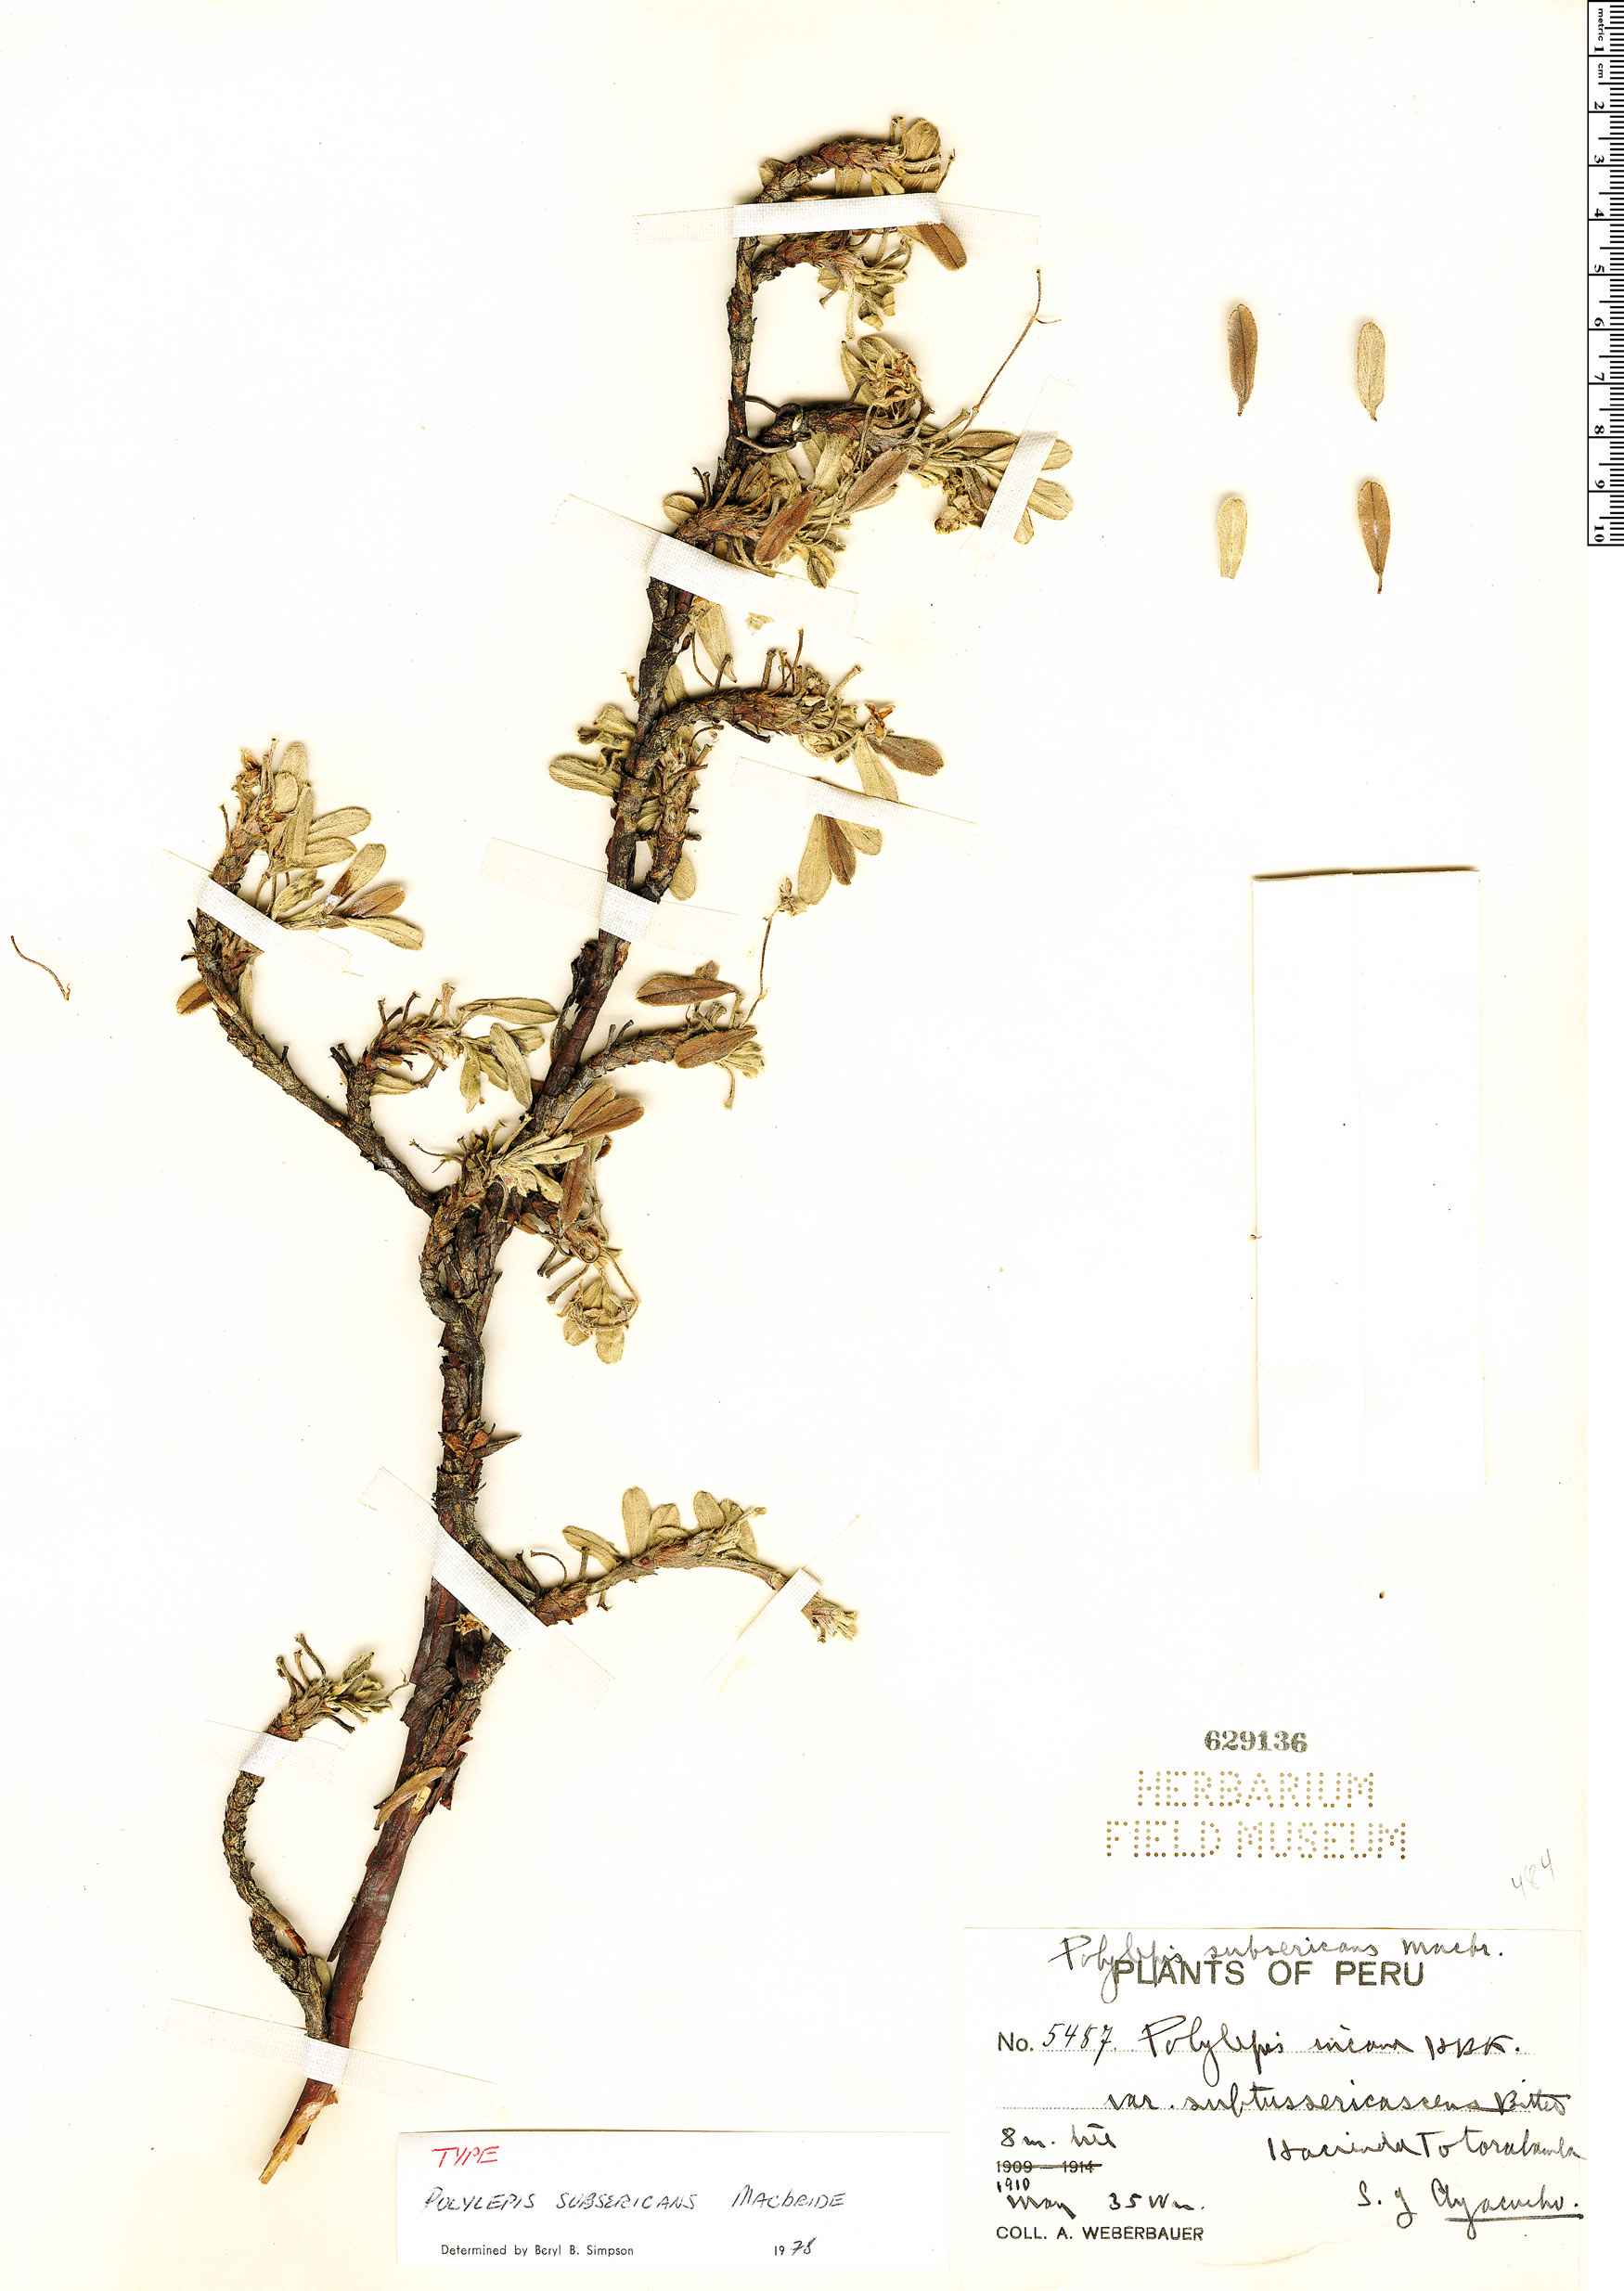 Specimen: Polylepis subsericans